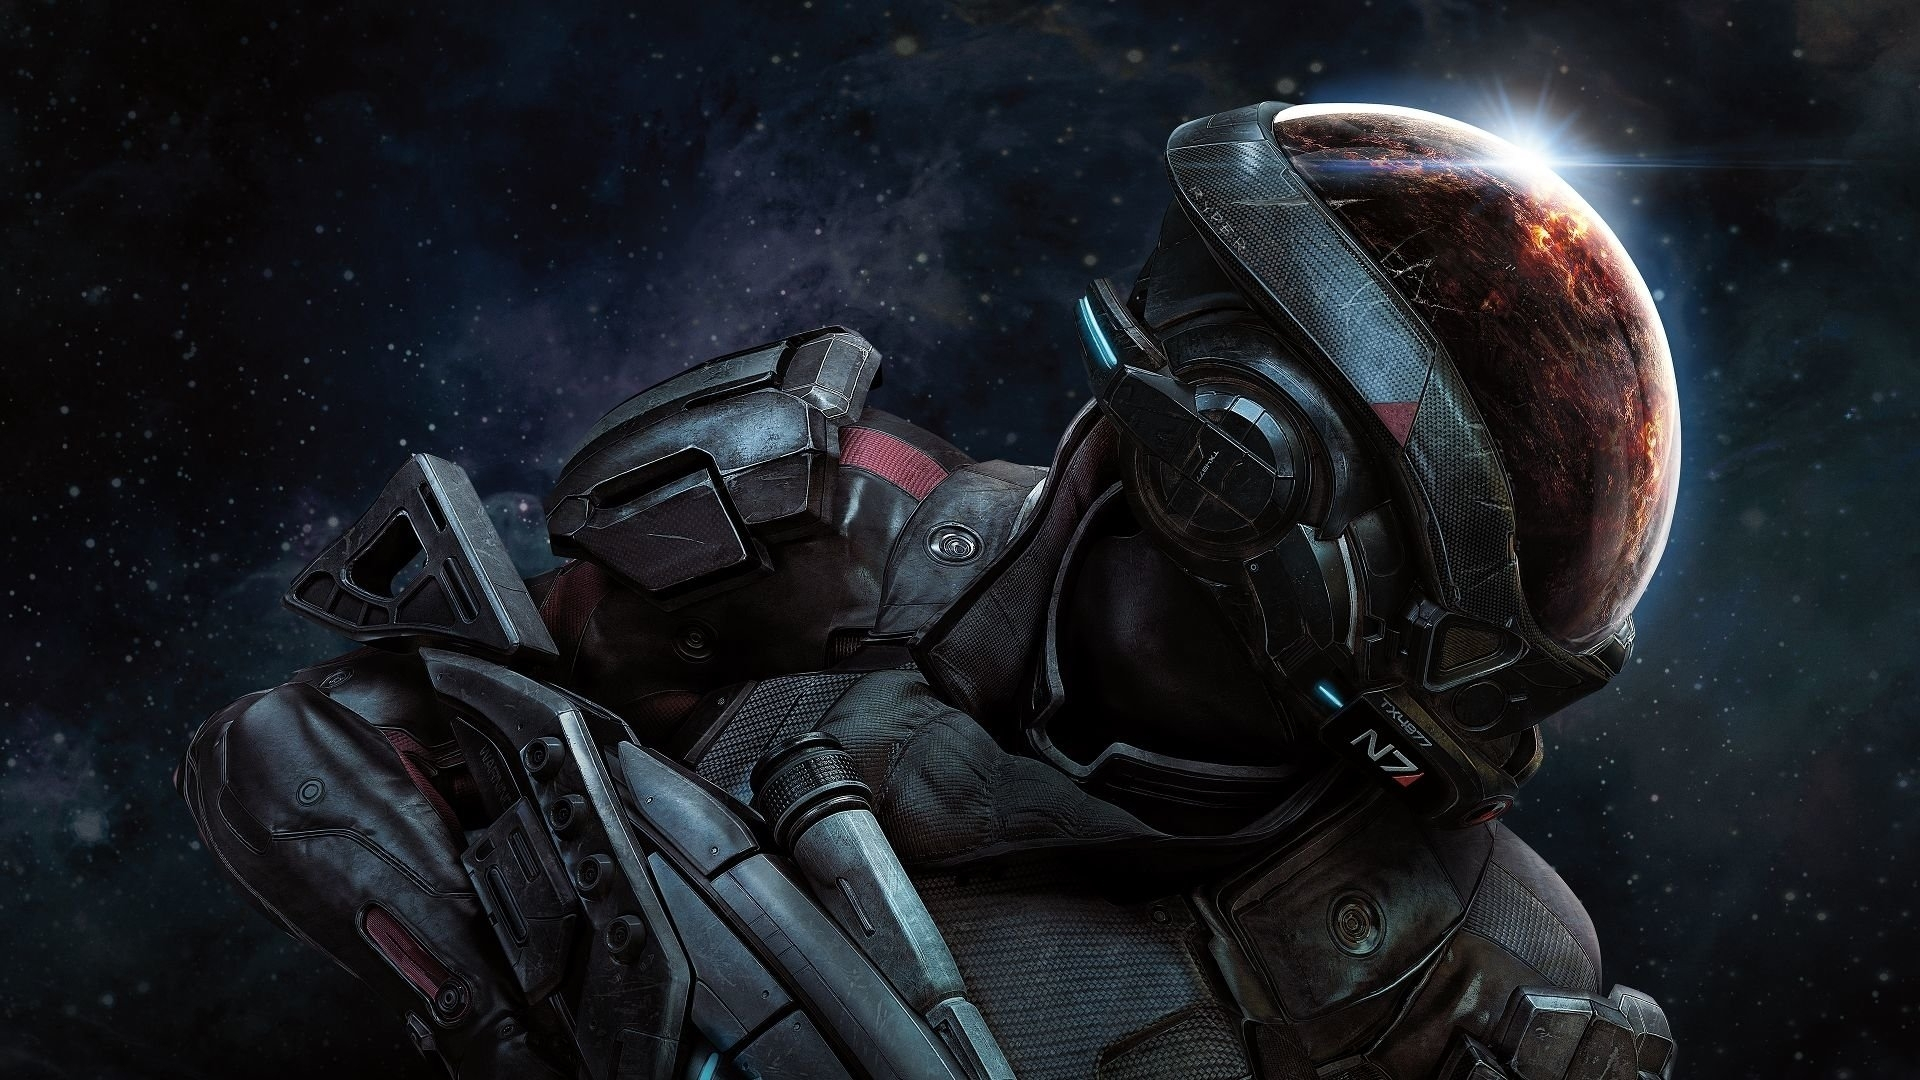 1051 mass effect hd wallpapers | background images - wallpaper abyss